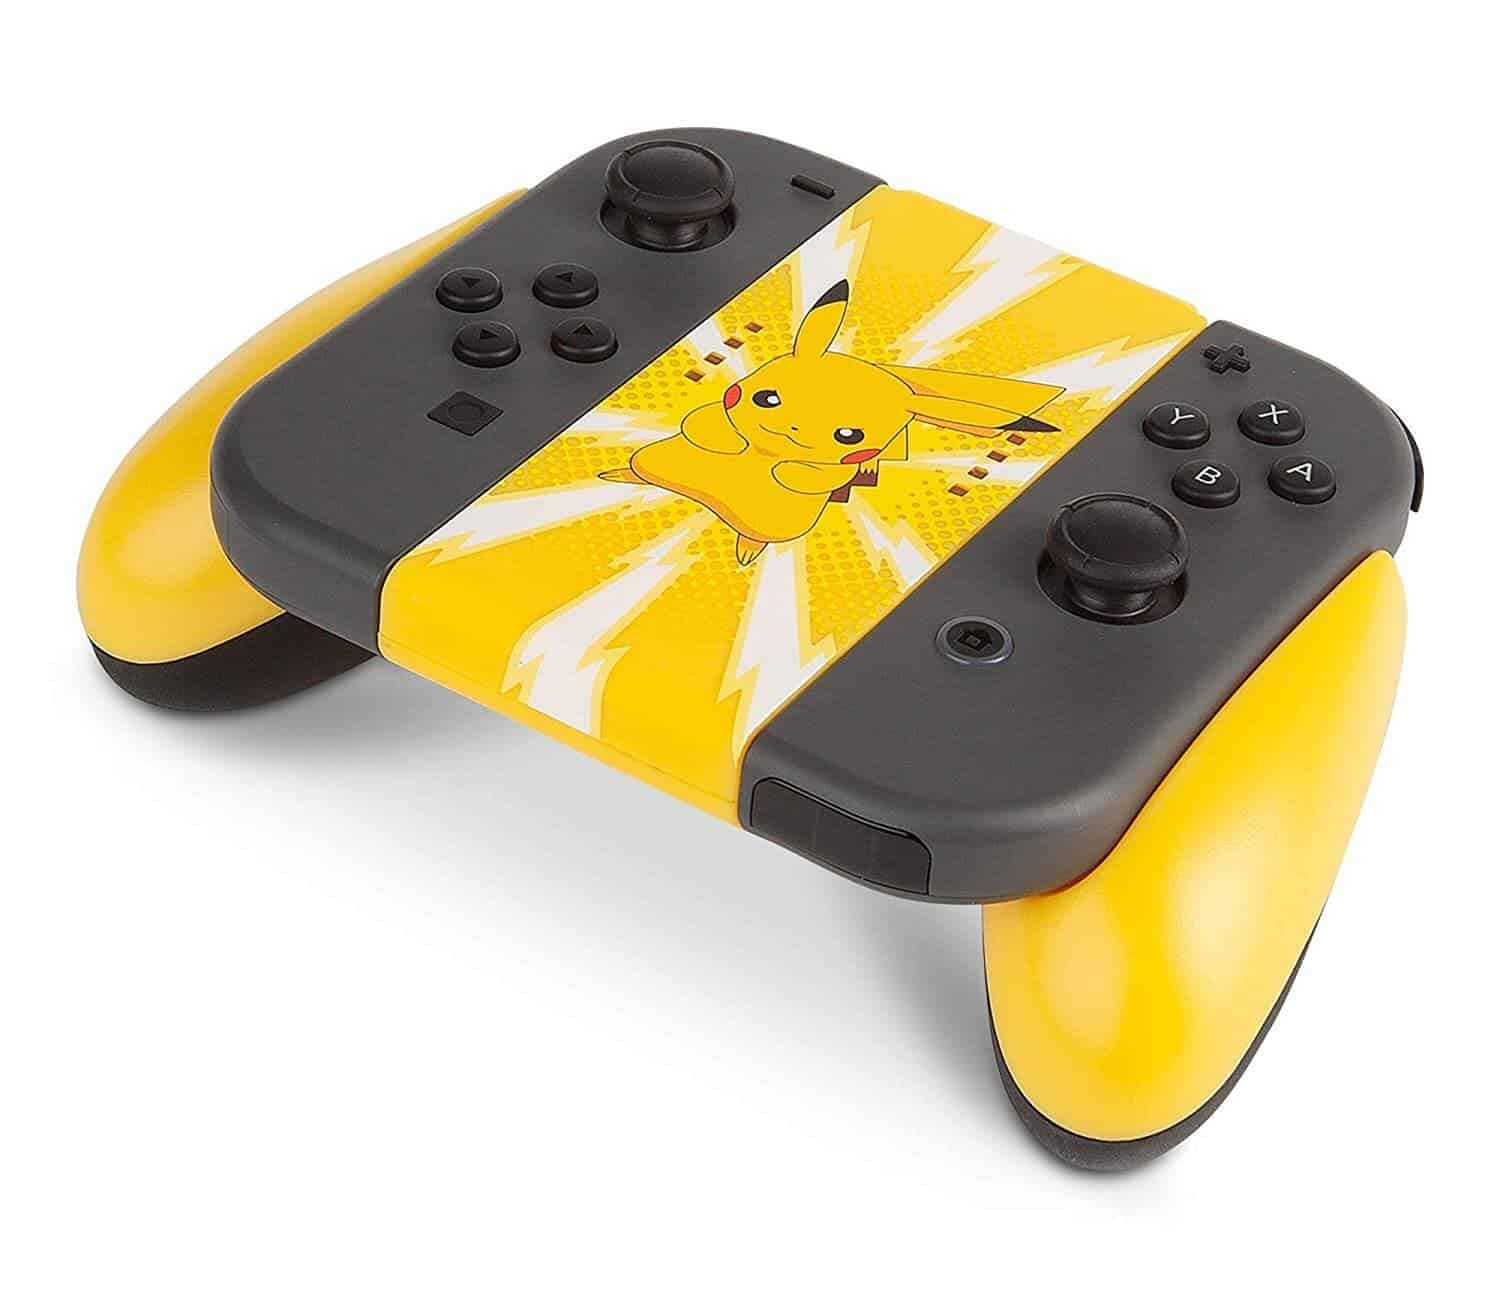 Nintendo Switch Pikachu Joy-Con grip